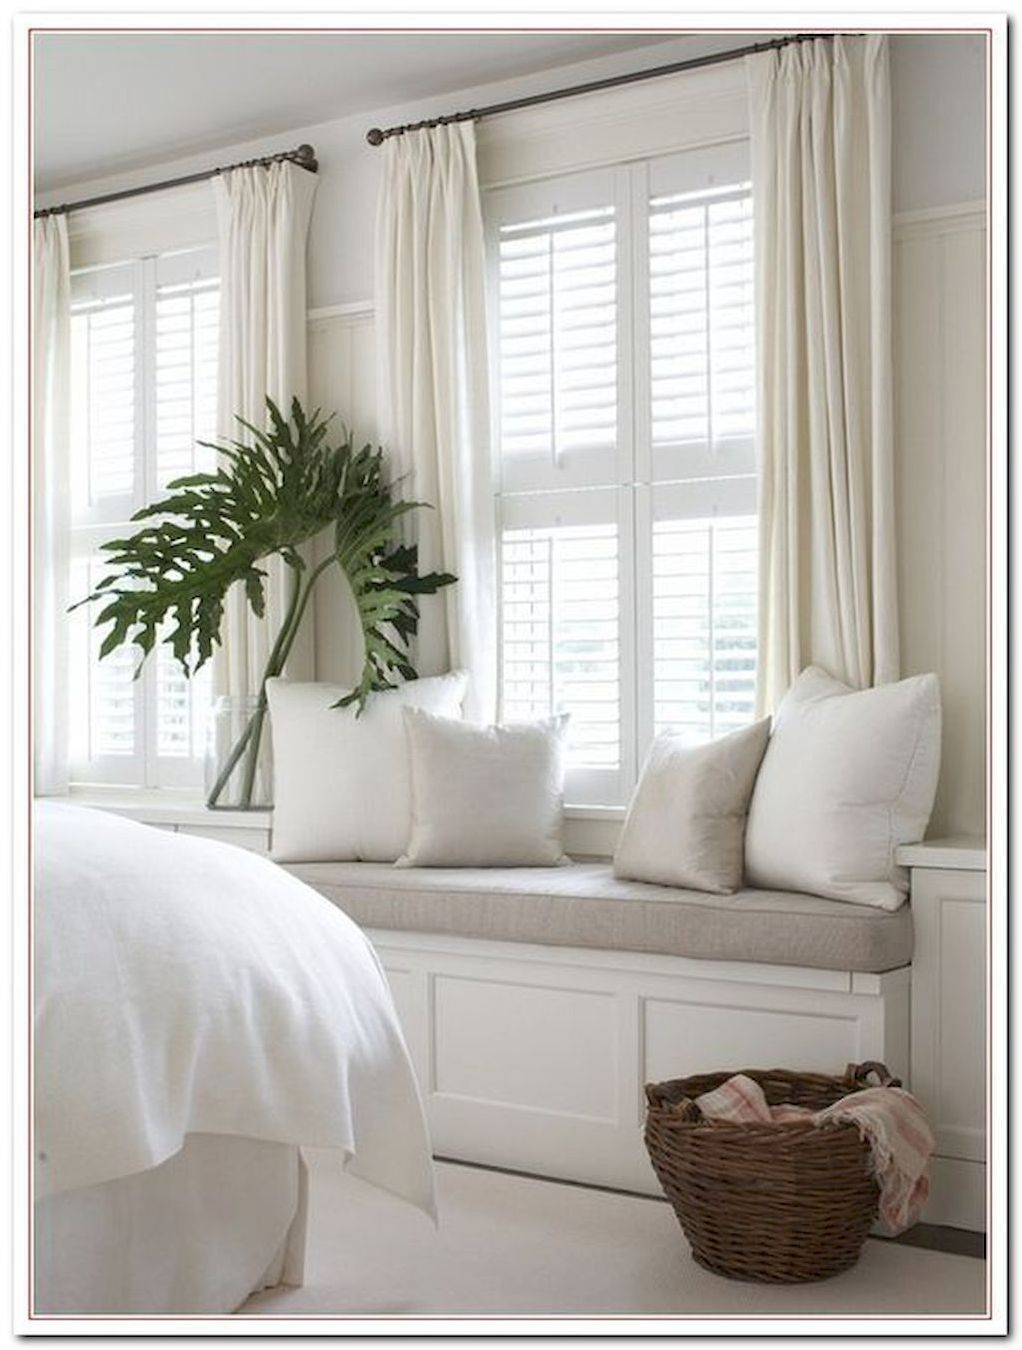 9 Gorgeous Bedroom Curtain Ideas Bedroom Curtains With Blinds